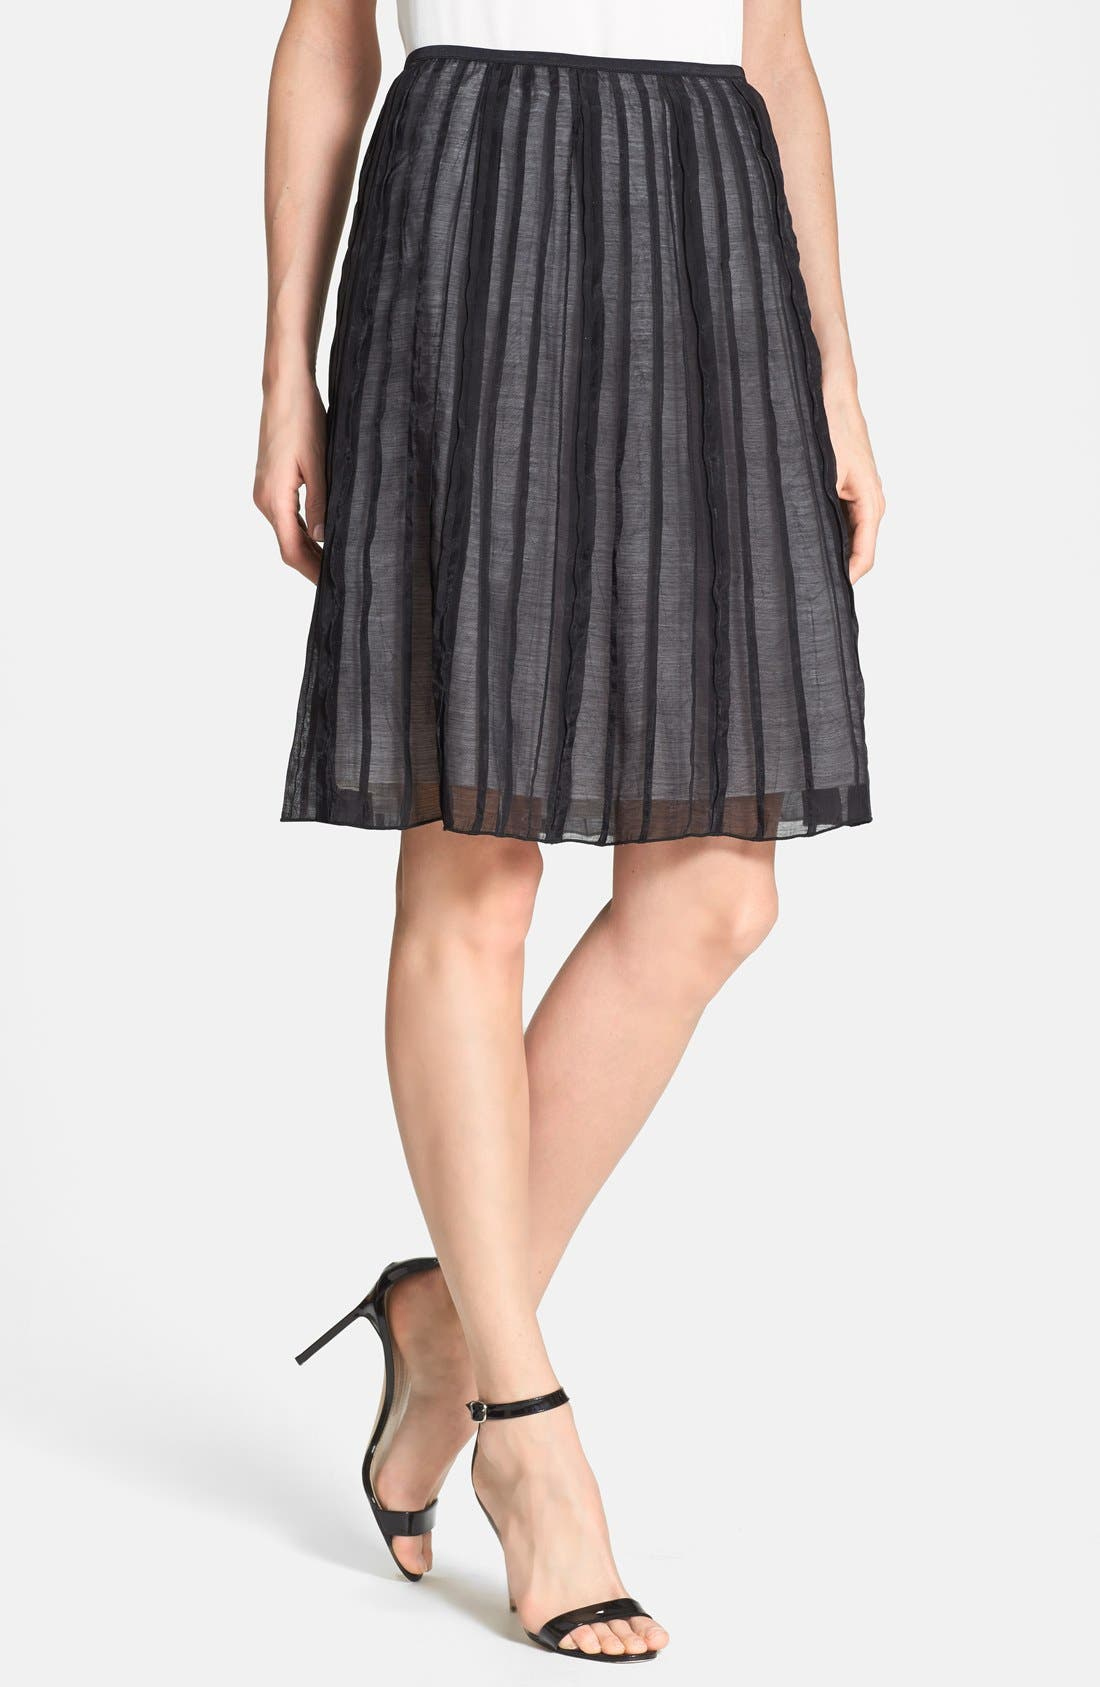 Alternate Image 1 Selected - NIC+ZOE 'Batiste Flirt' Skirt (Regular & Petite)